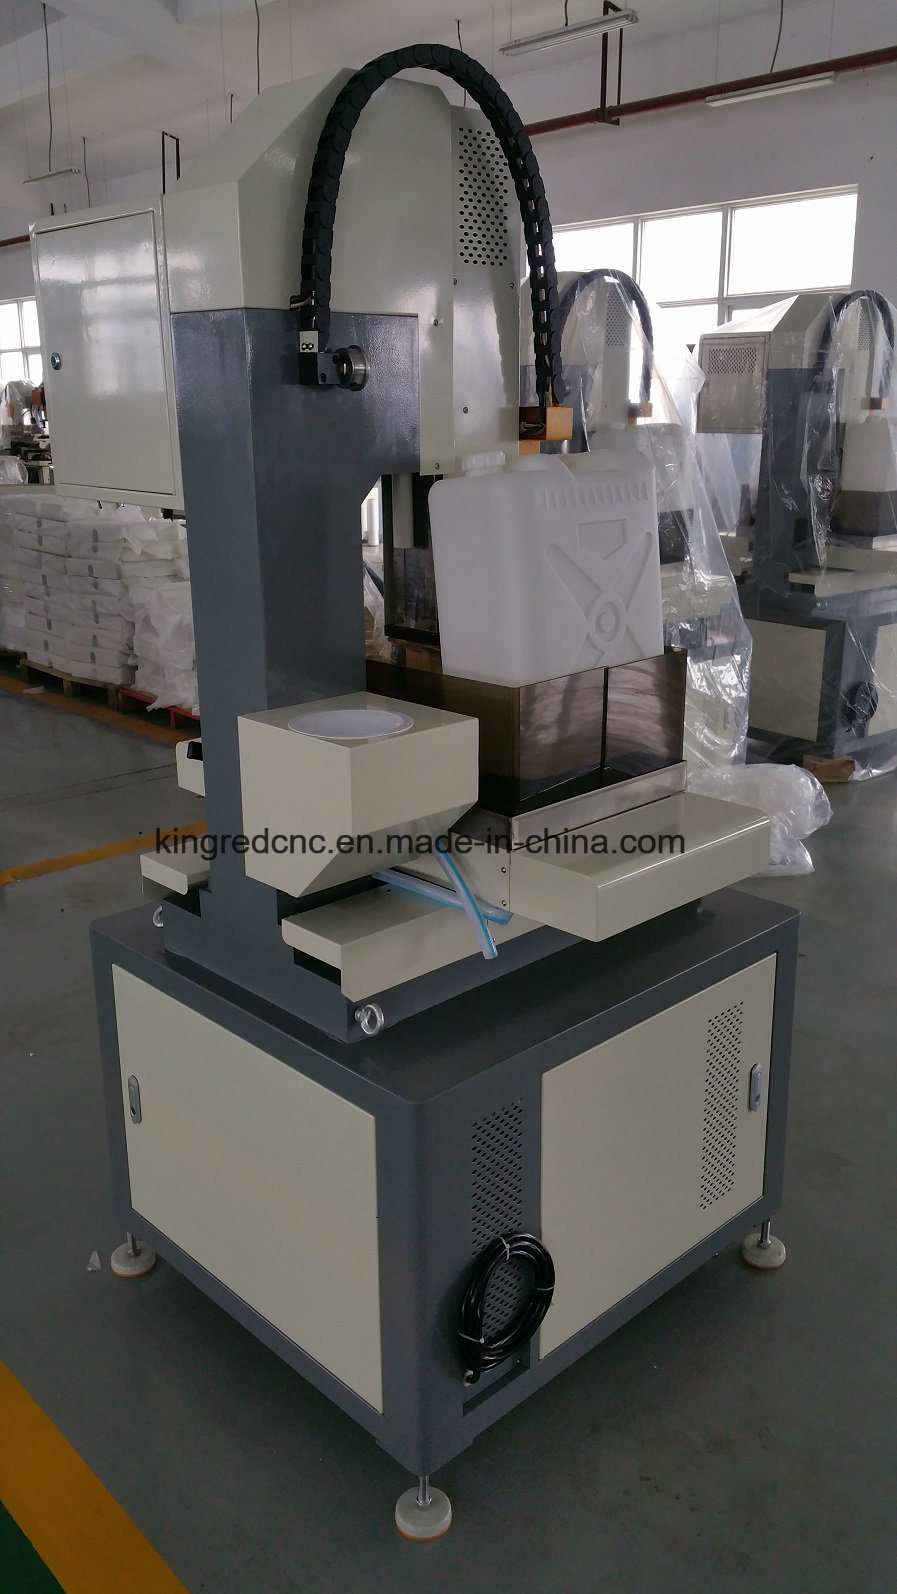 China Kingred EDM Small Hole Drilling Machine Photos & Pictures ...